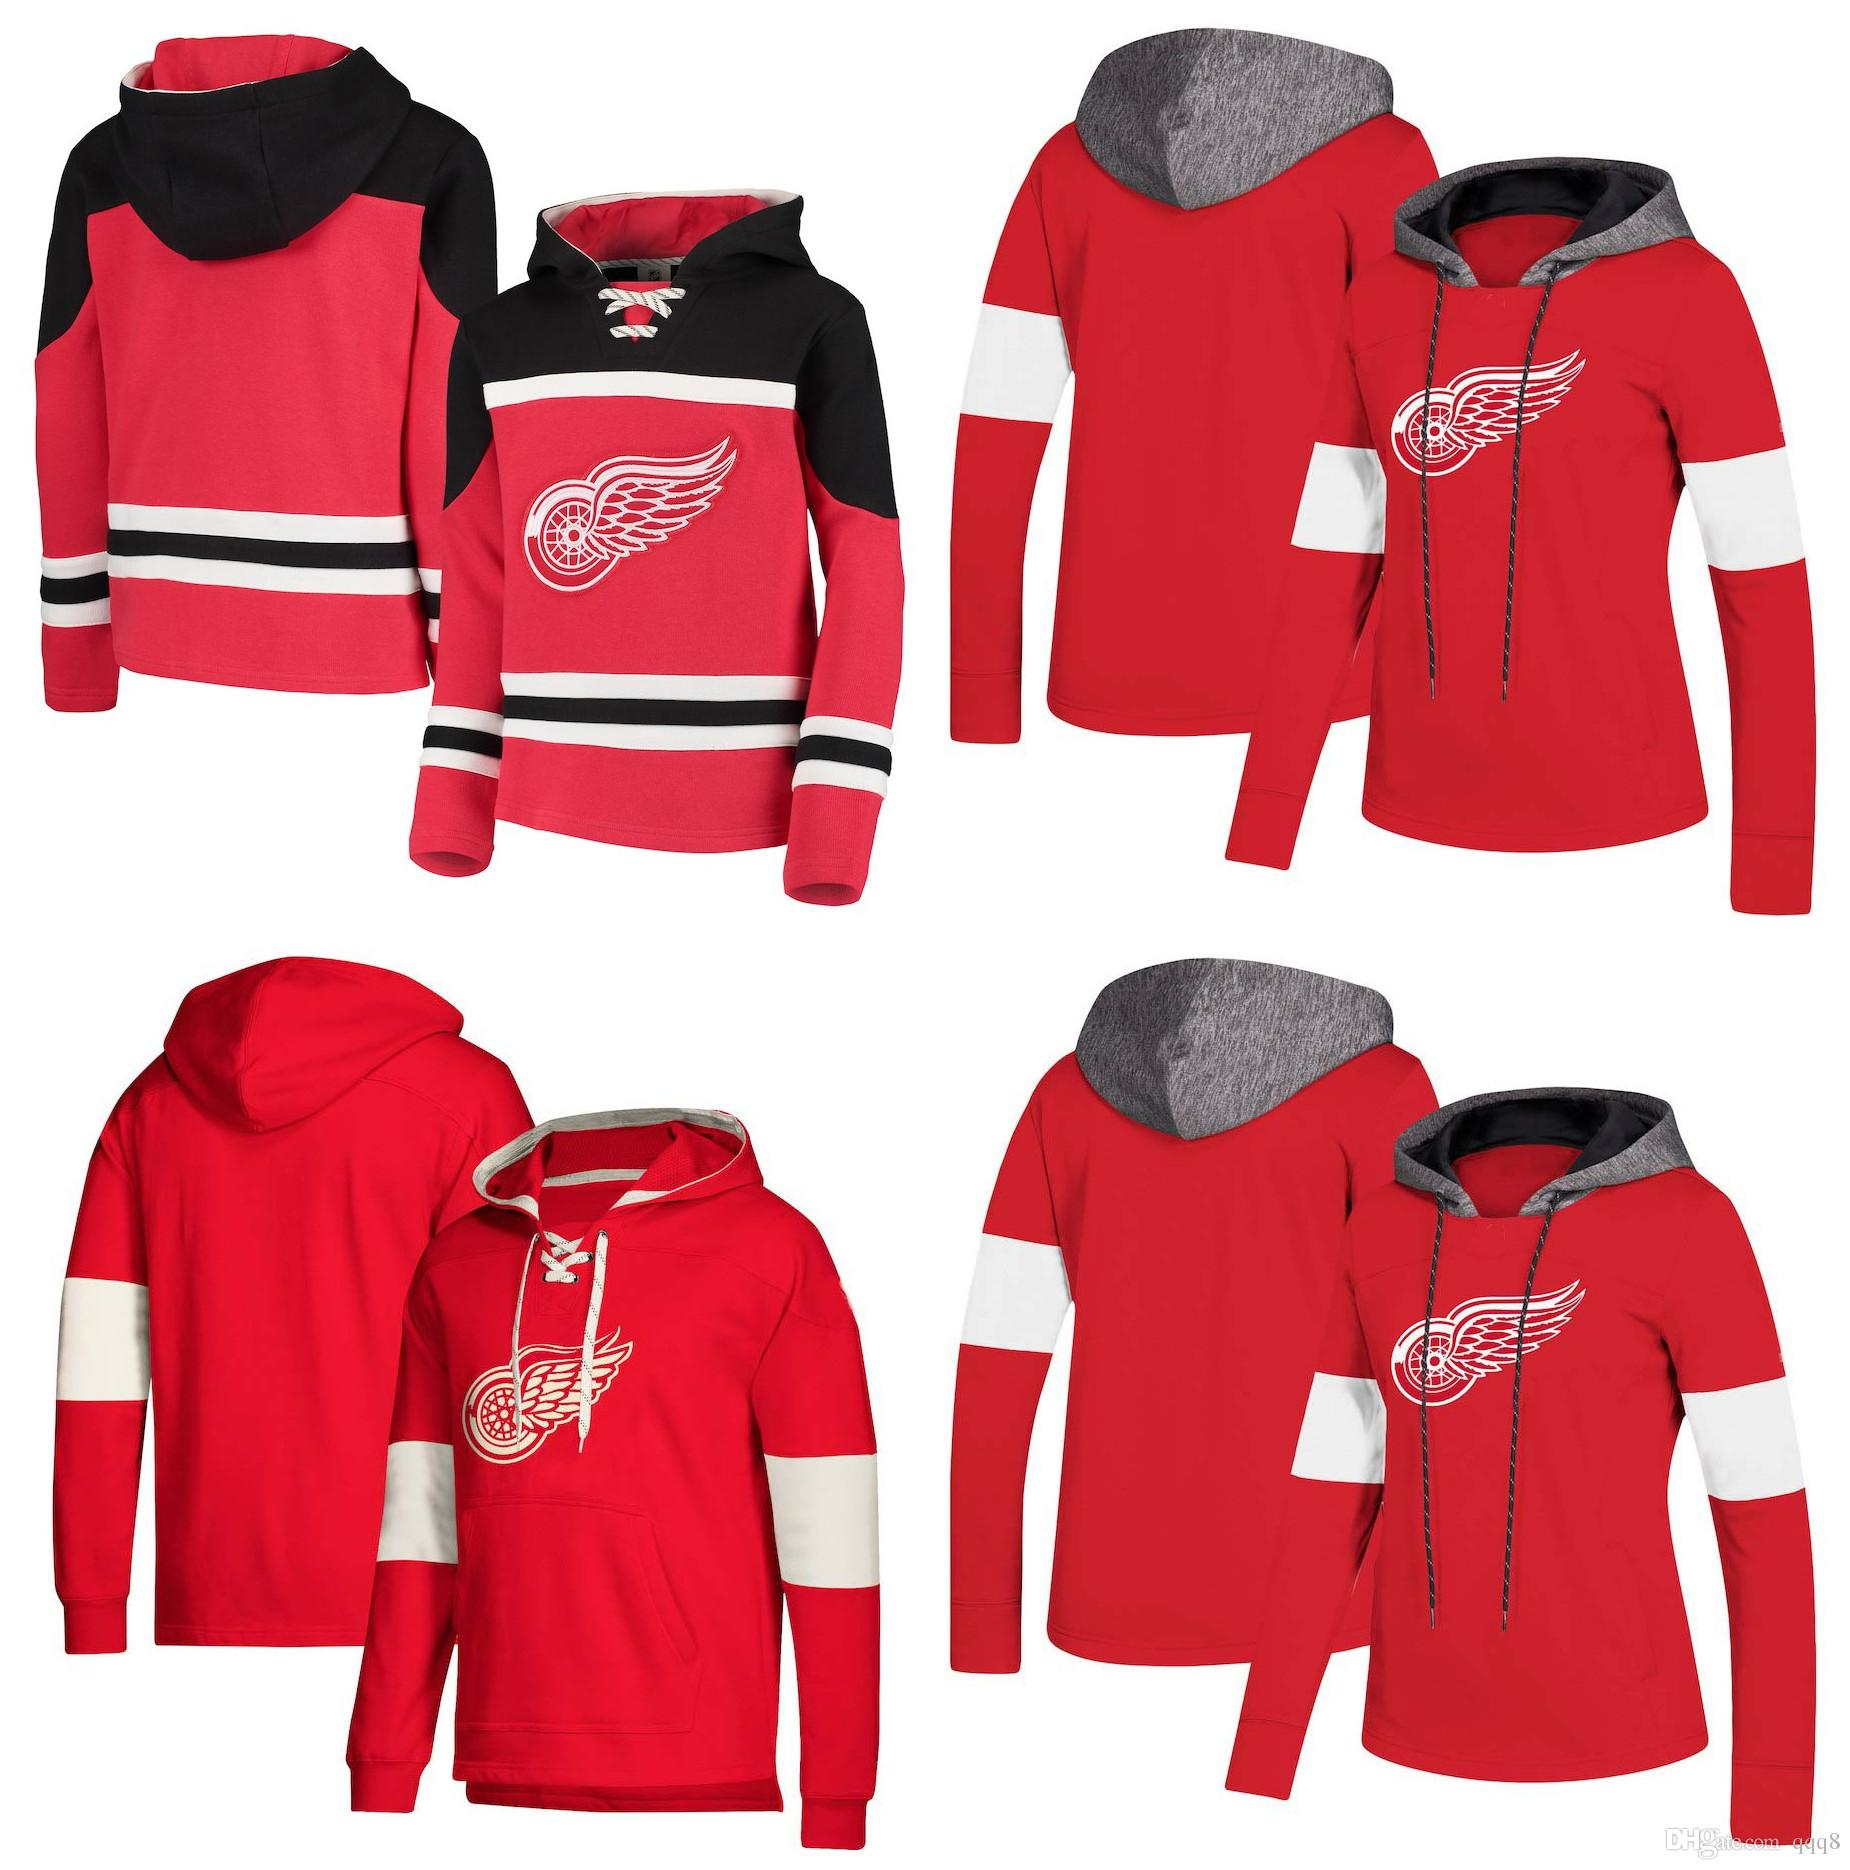 9bb9e229b9f 2019 Detroit Red Wings Hoodie Jersey Anthony Mantha Dylan Larkin Henrik  Zetterberg Tomas Tatar Abdelkader Witkowski Helm Stitched Hockey Pullover  From Qqq8